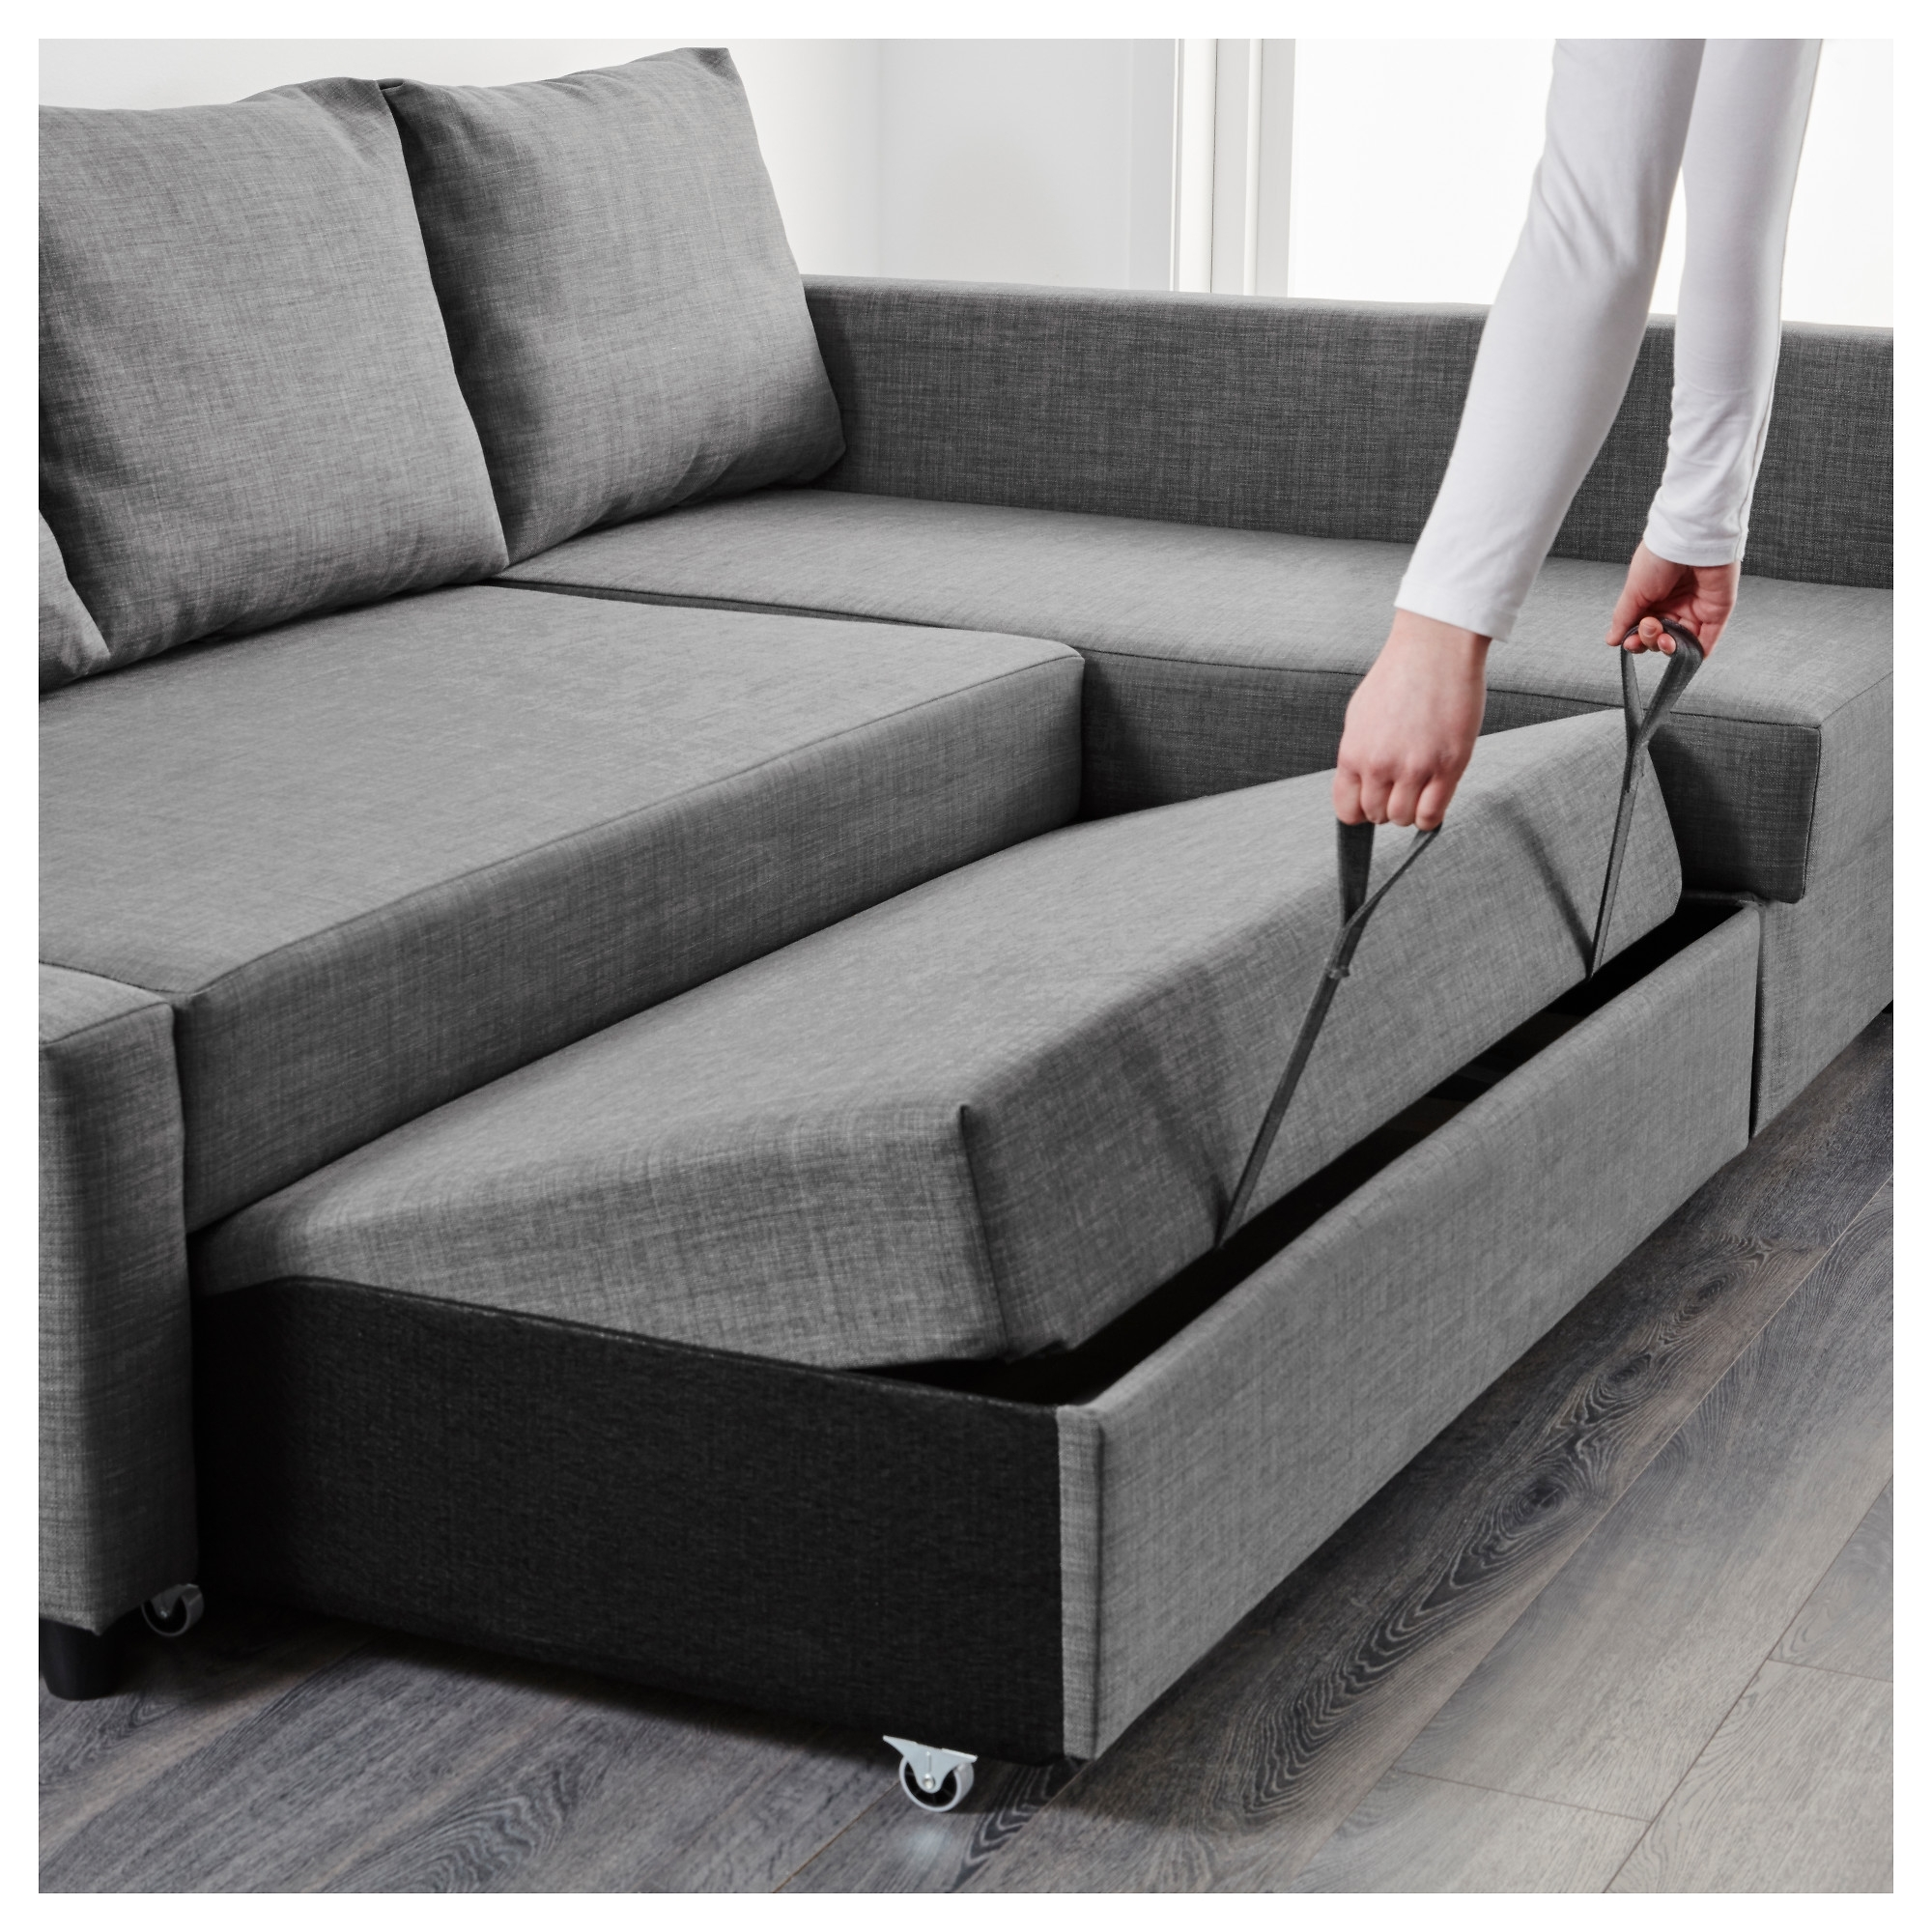 Grey Sofas With Chaise Throughout Most Current Friheten Corner Sofa Bed With Storage Skiftebo Dark Grey – Ikea (View 7 of 15)